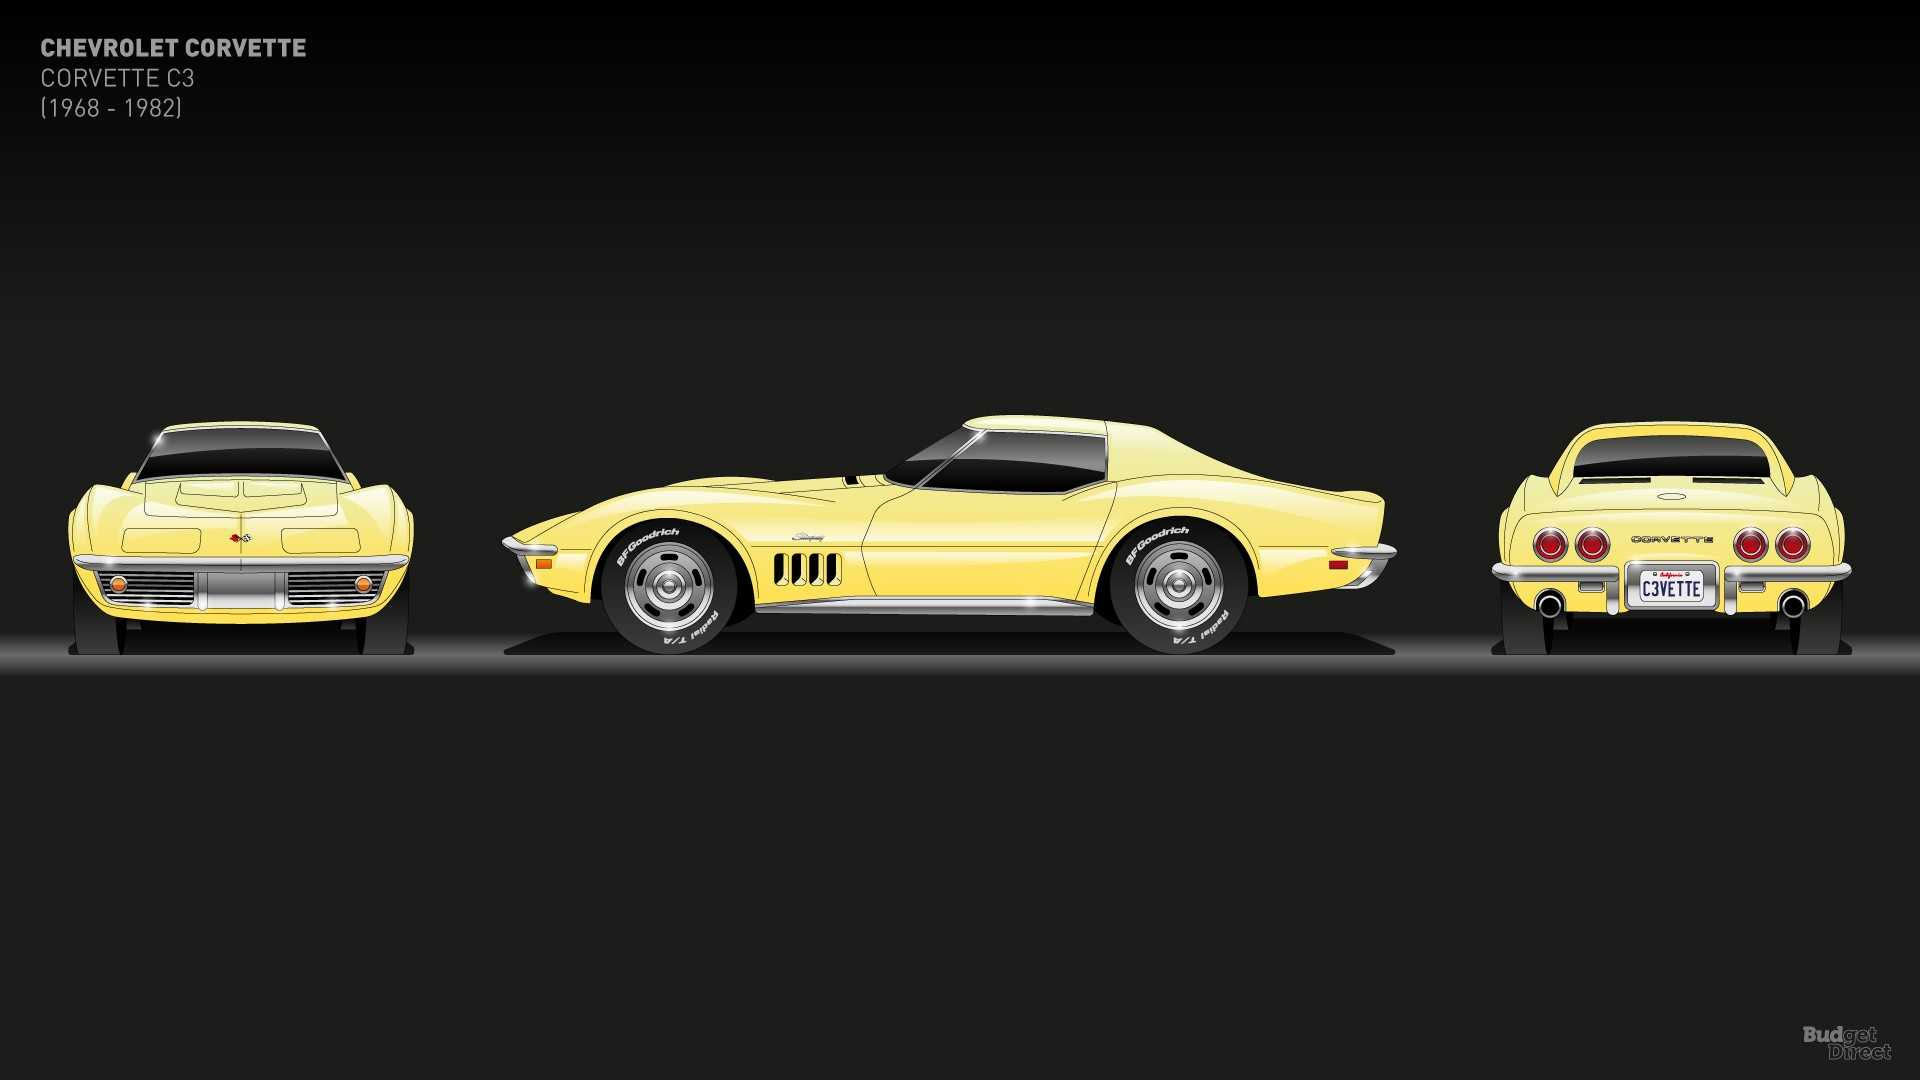 From C1 To C7: Discover How The Chevy Corvette Has Evolved